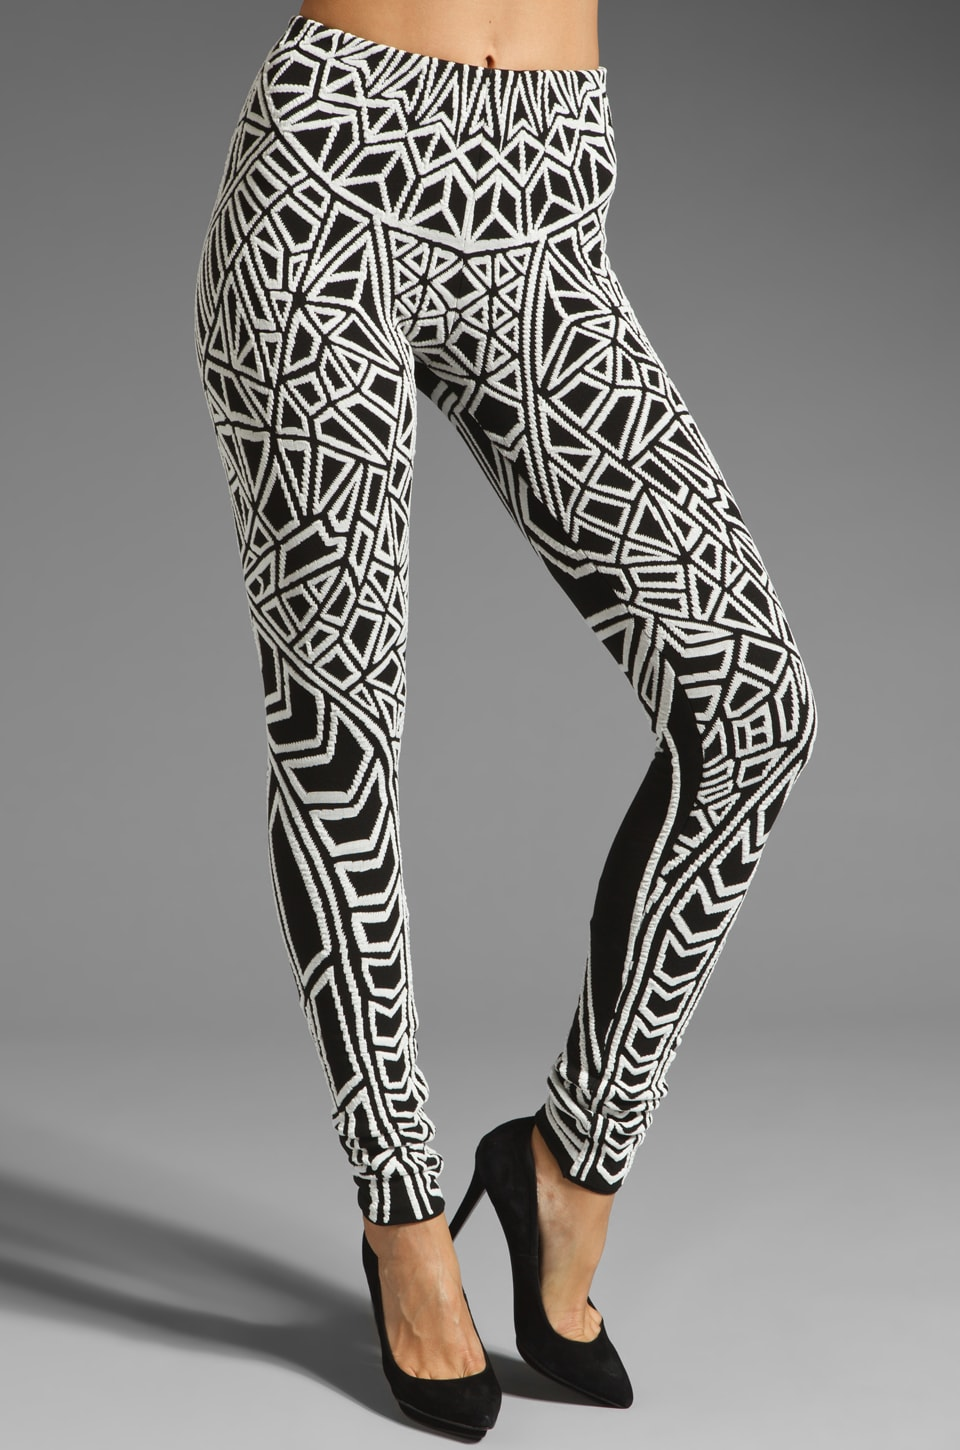 RVN Geo Jacquard Textured Leggings in Black/White